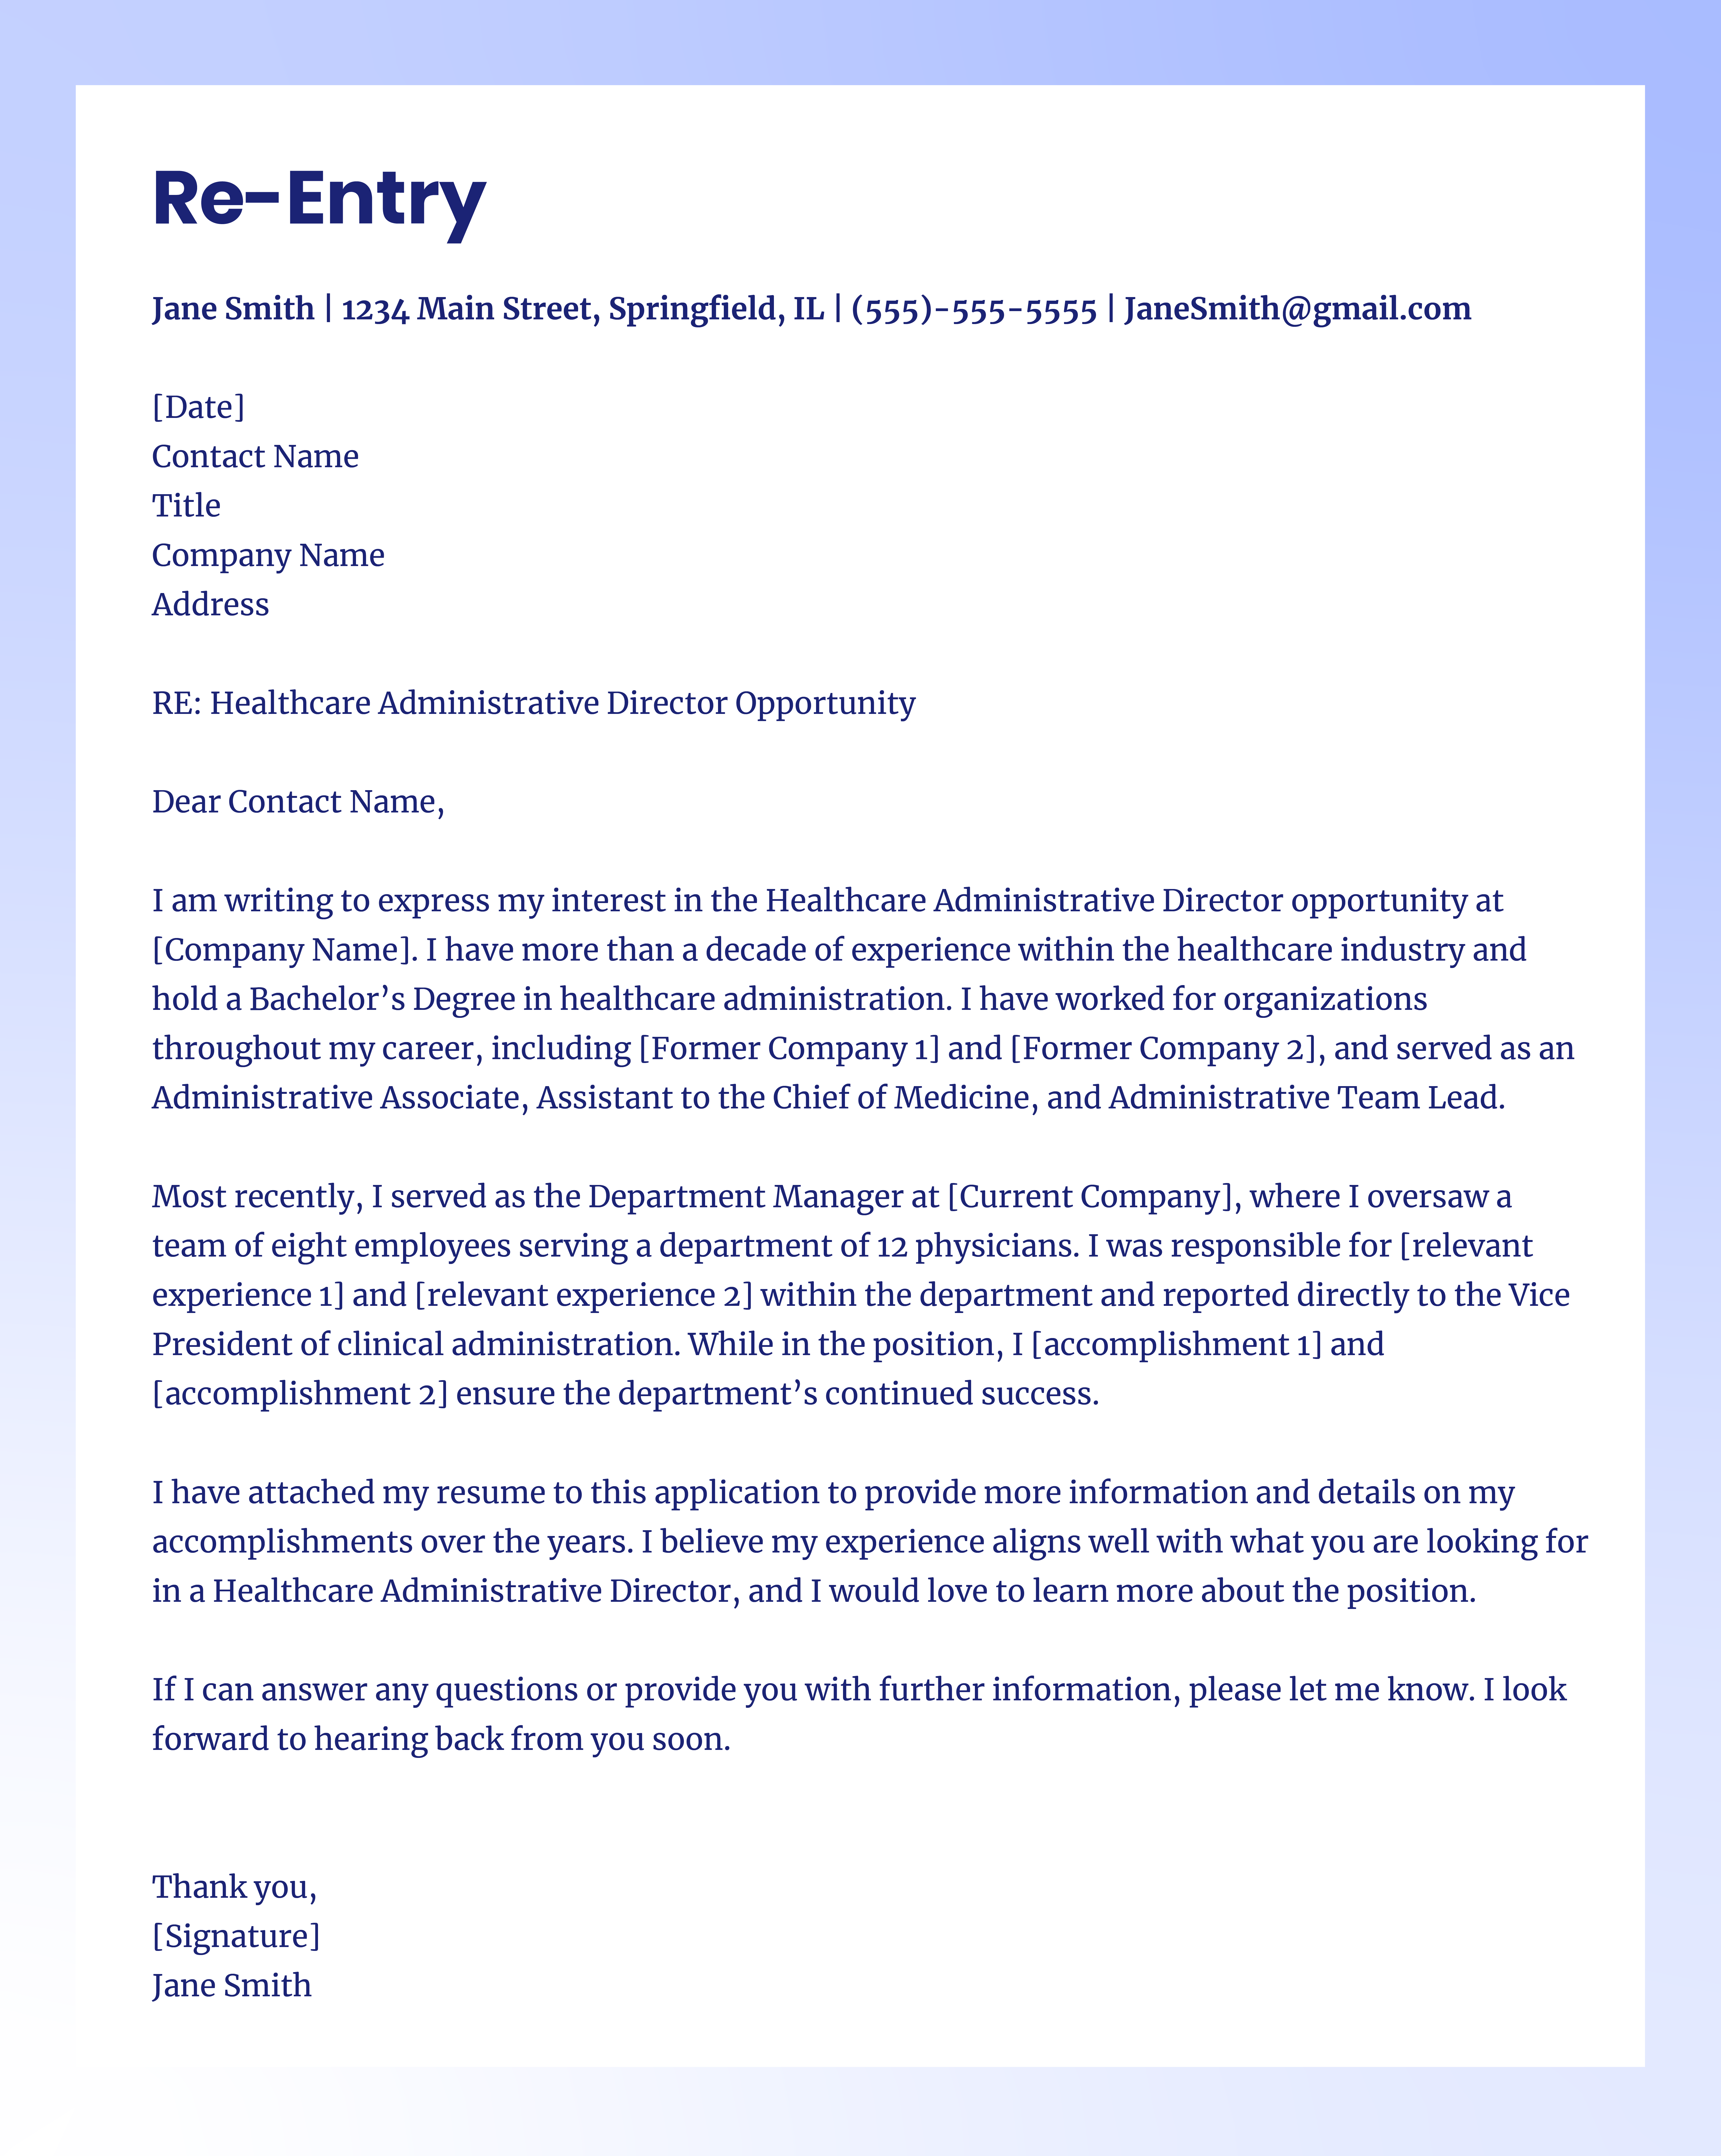 re-entry cover letter